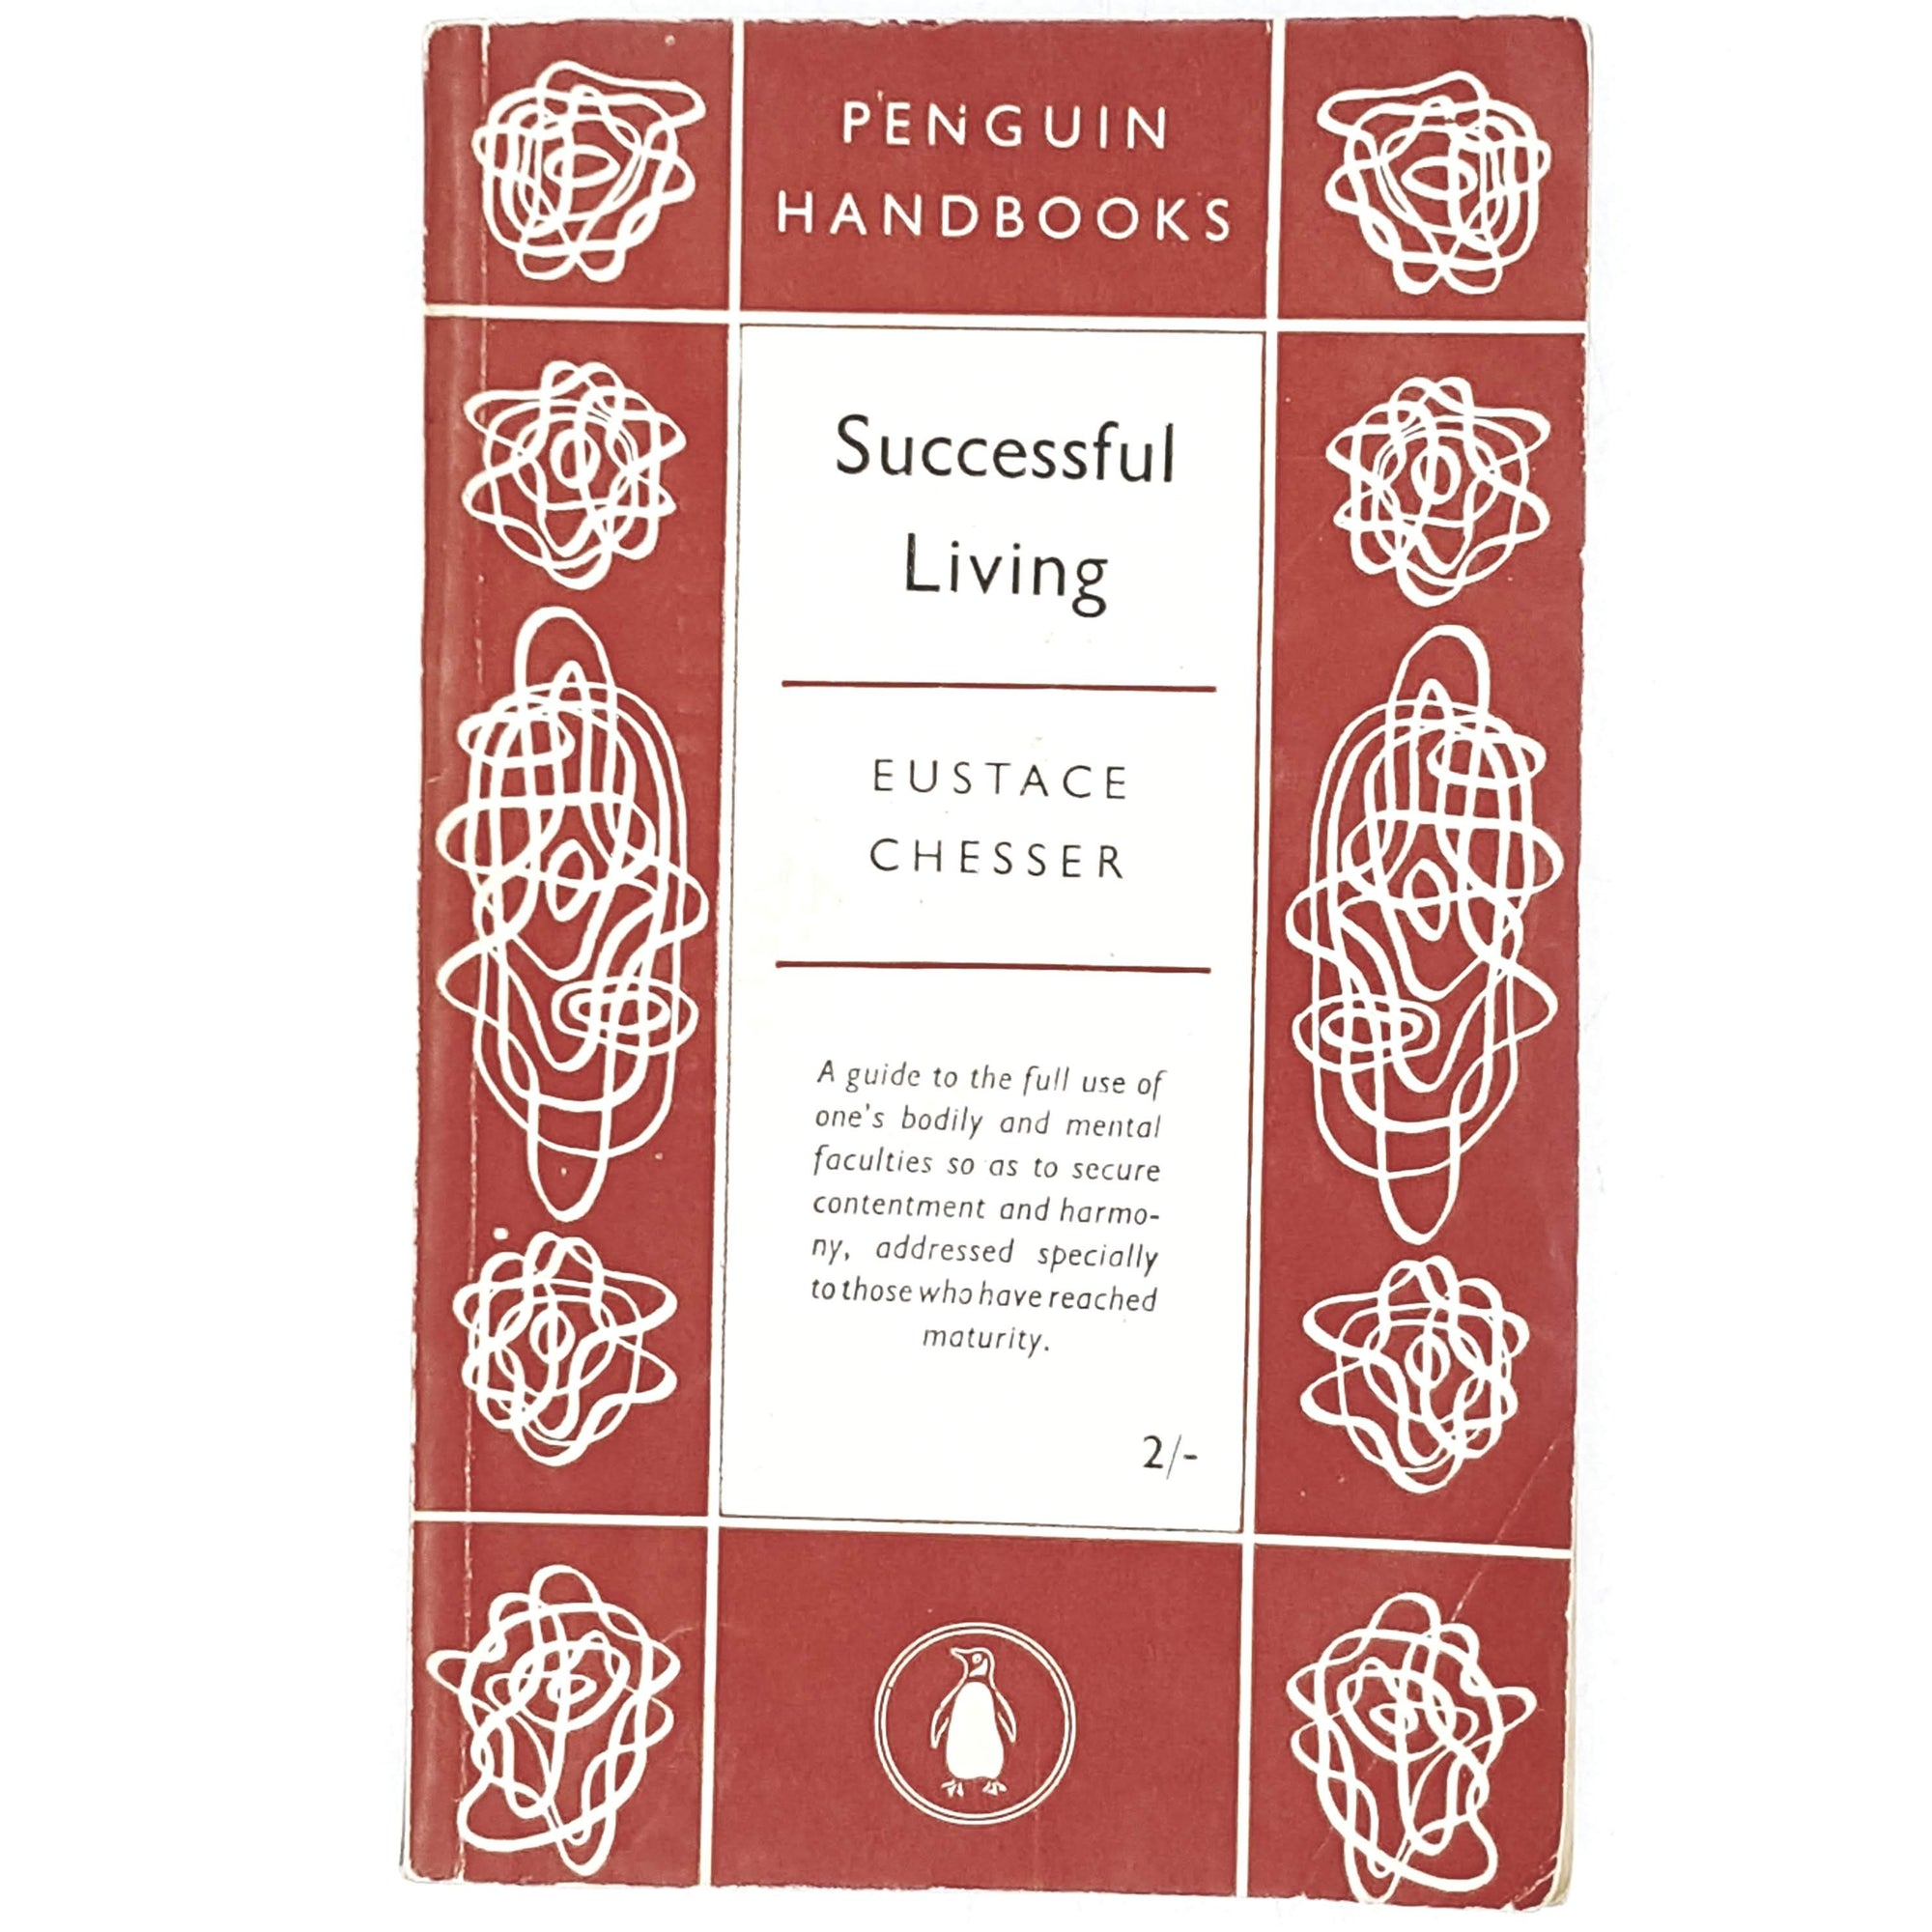 red-handbook-vintage-penguin-country-house-library